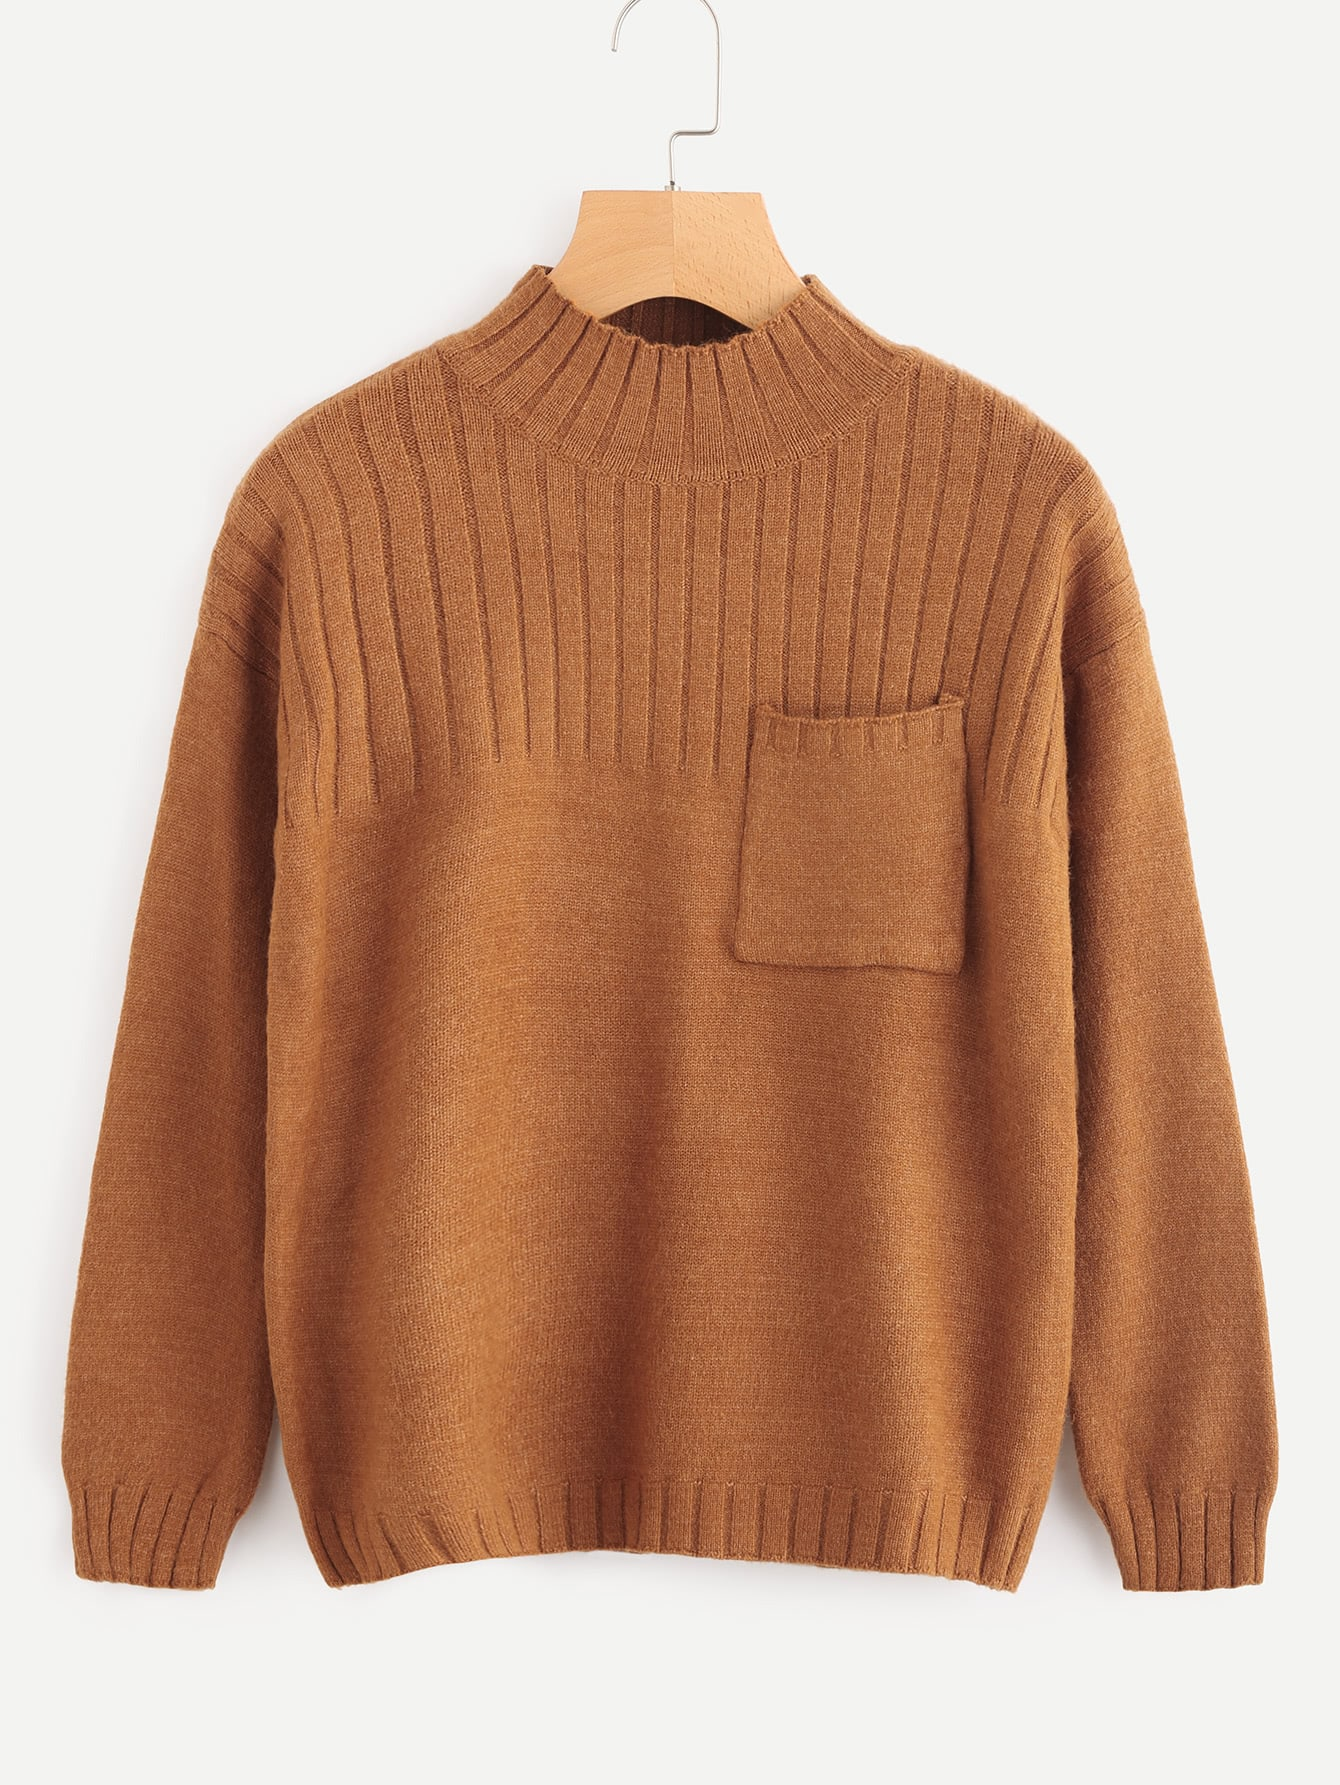 Chest Pocket Ribbed Knit Sweater rkni170918120